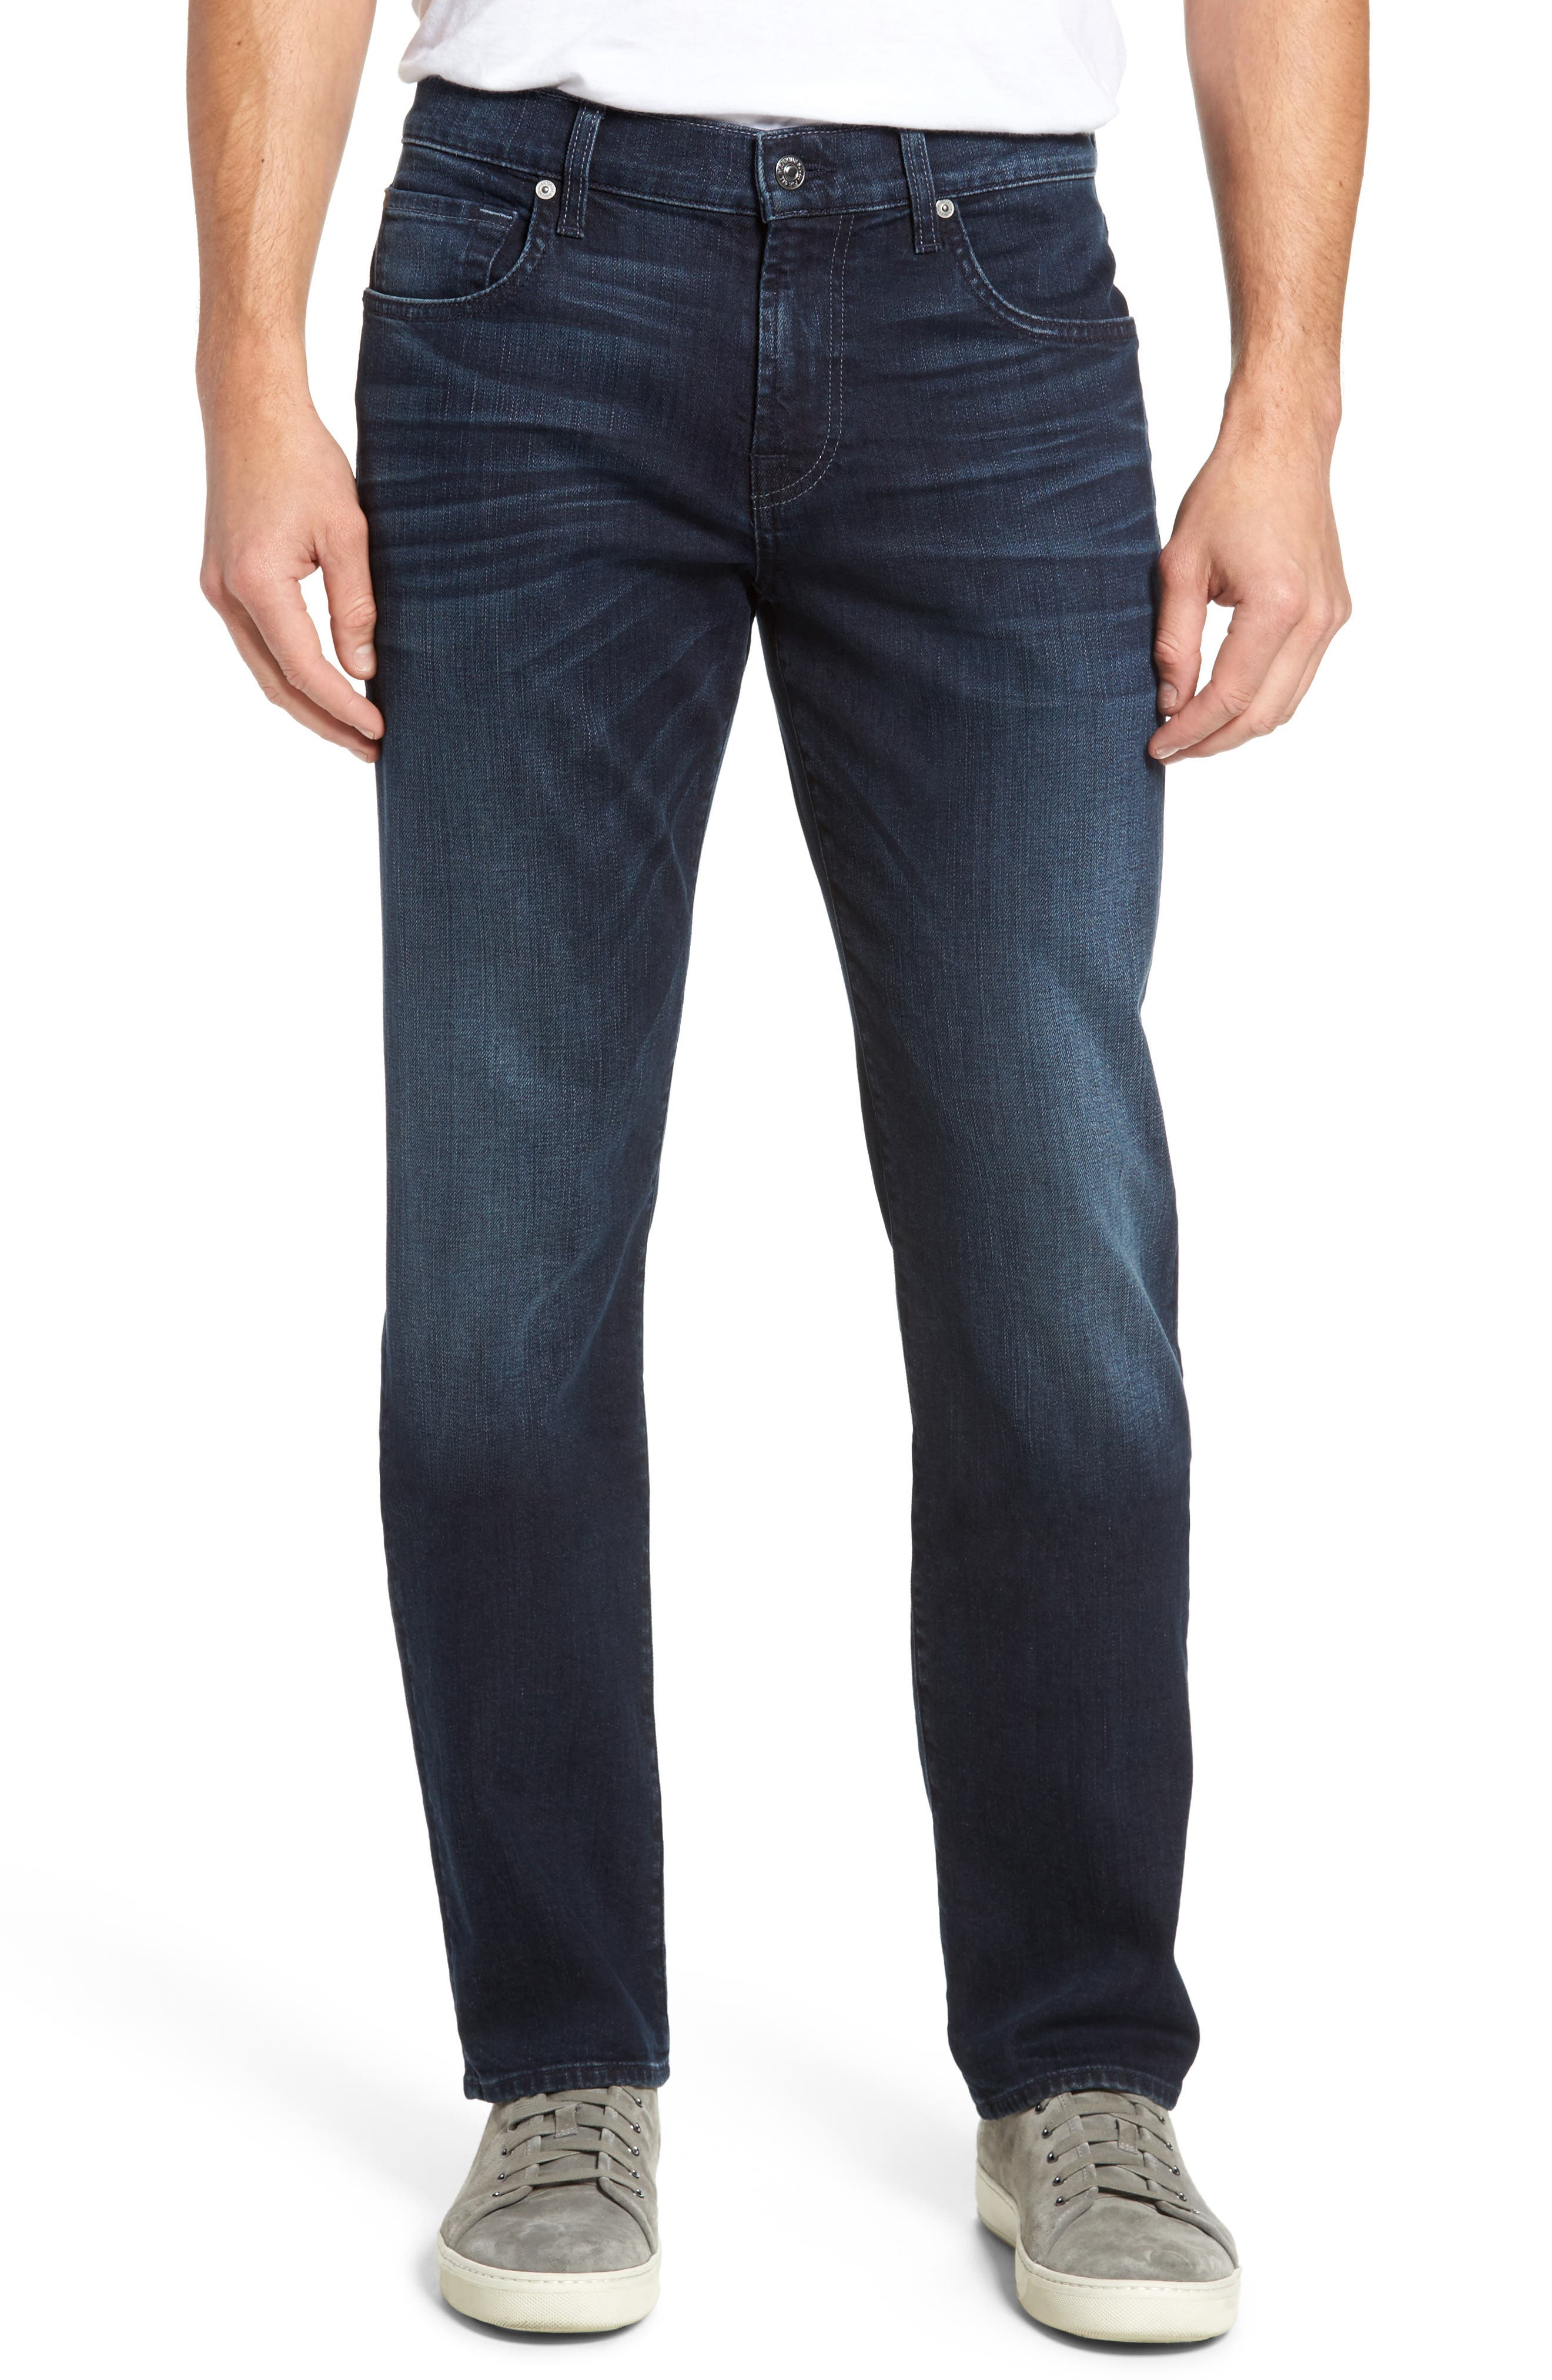 Alternate Image 1 Selected - 7 For All Mankind® The Straight Slim Straight Leg Jeans (Dark Current)